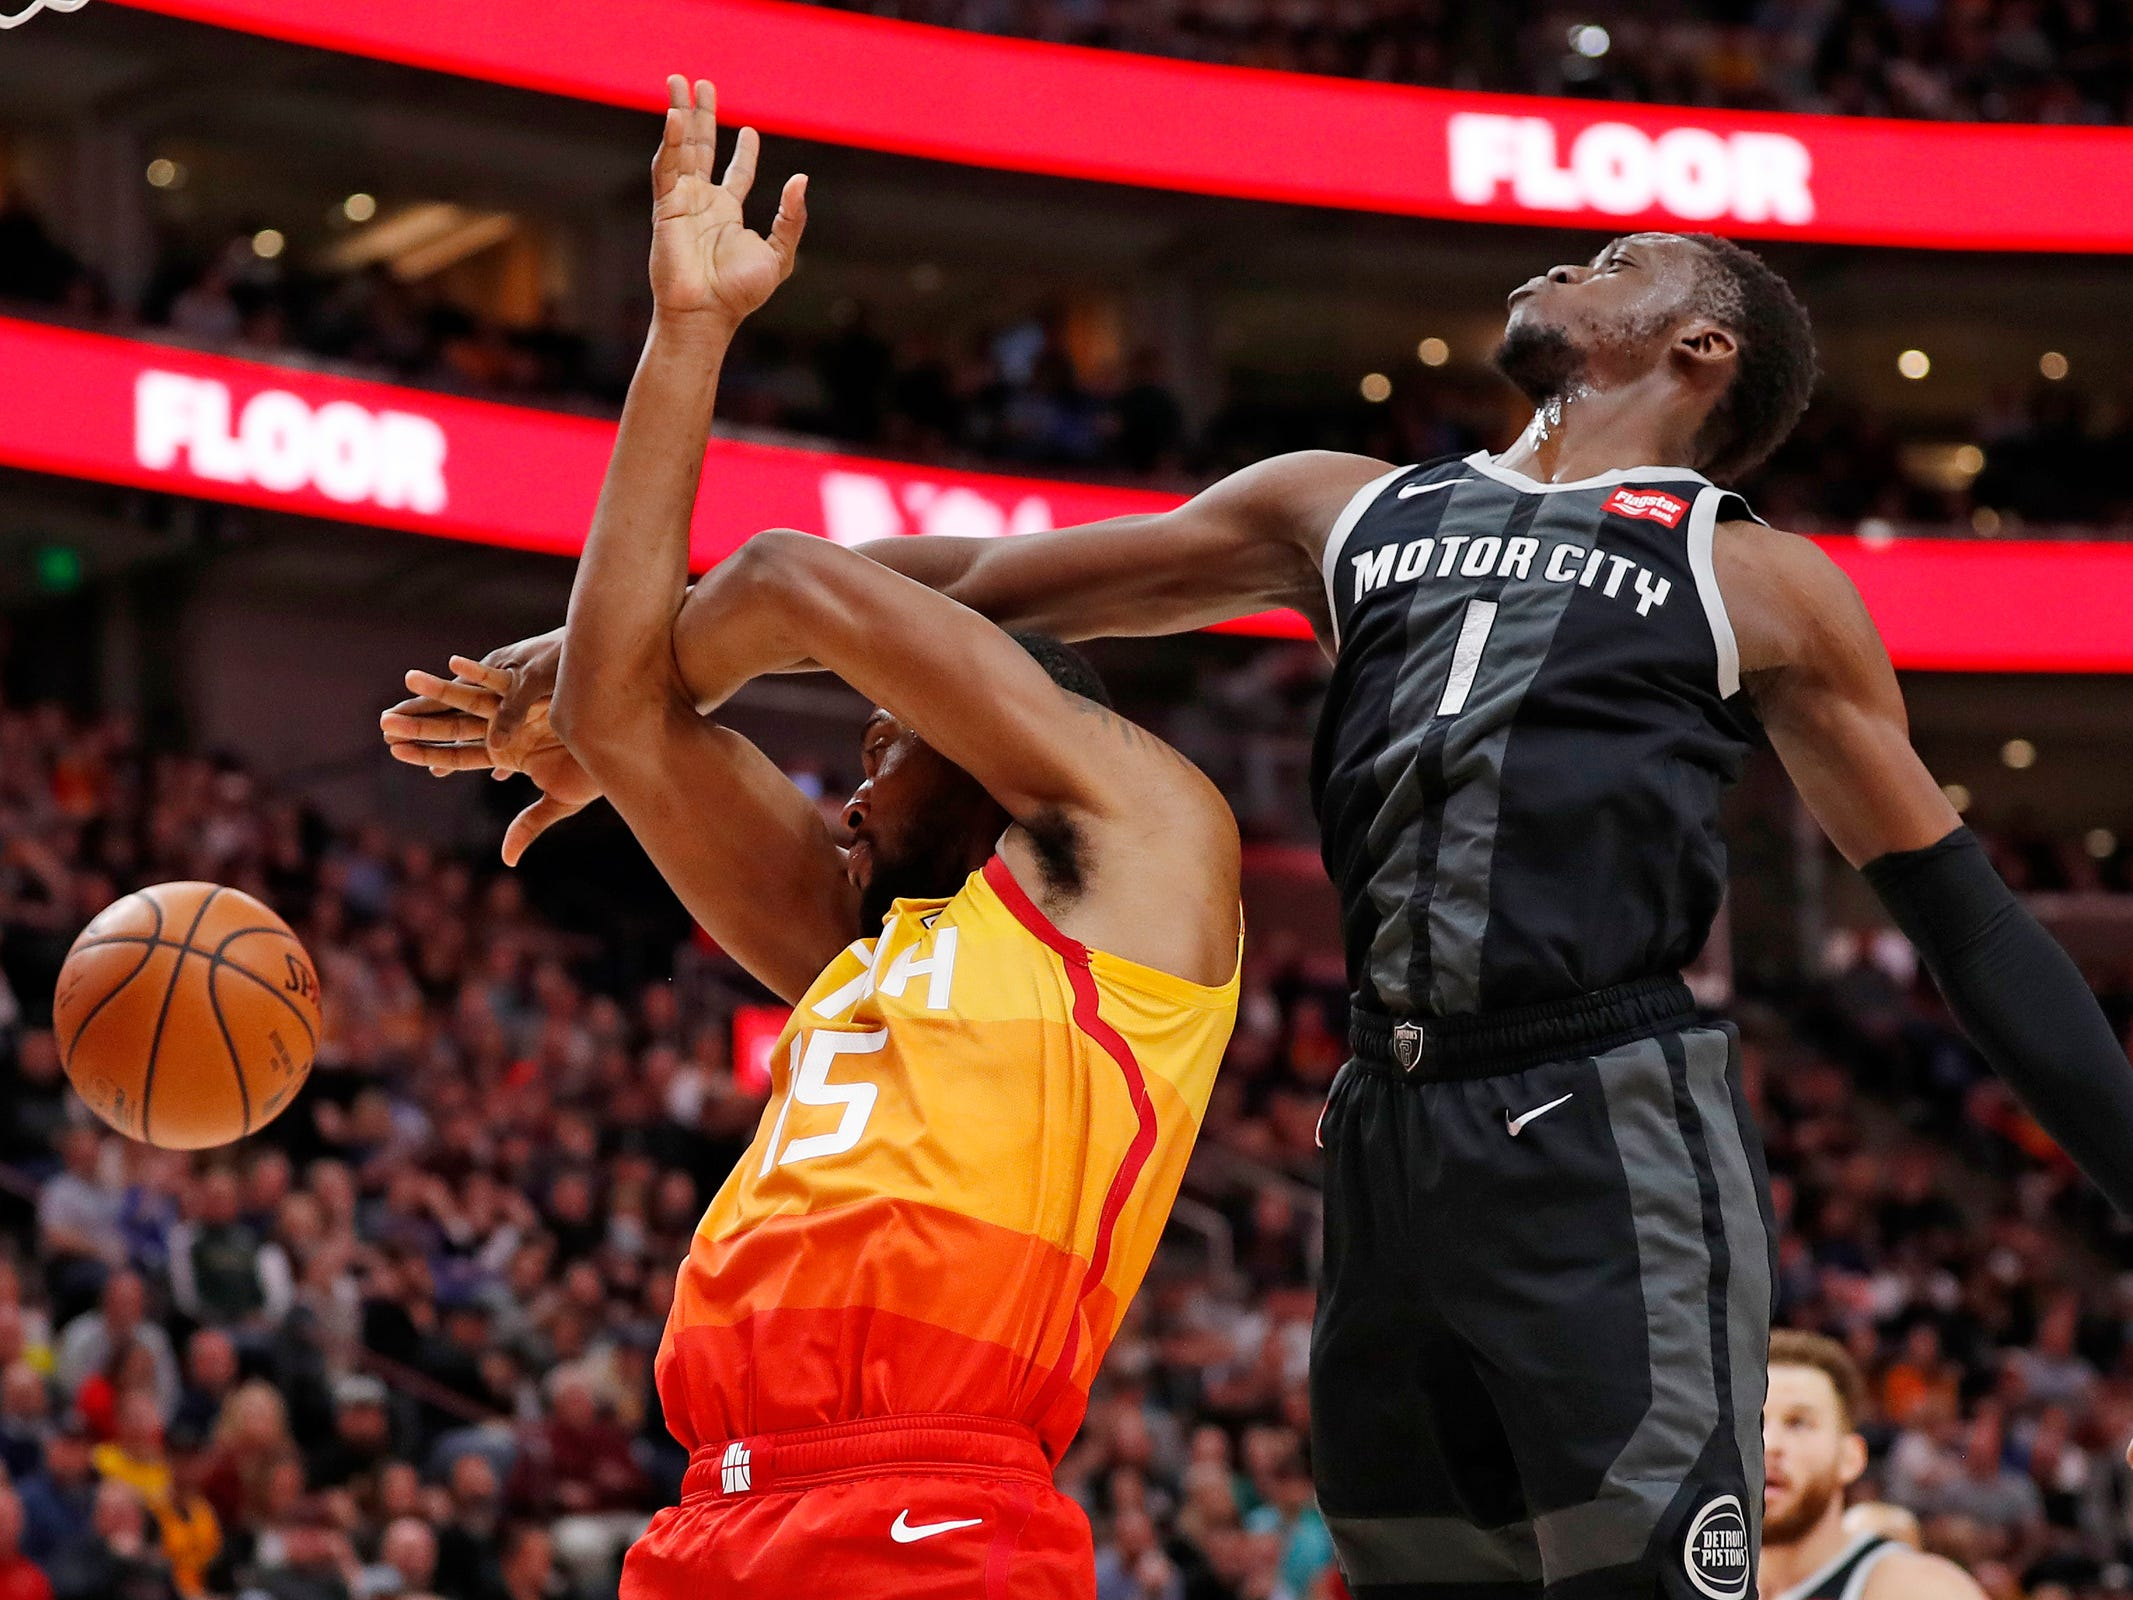 Jazz forward Derrick Favors and Pistons guard Reggie Jackson battle in the third quarter of the 100-94 loss to the Jazz on Monday, Jan. 14, 2019, in Salt Lake City.